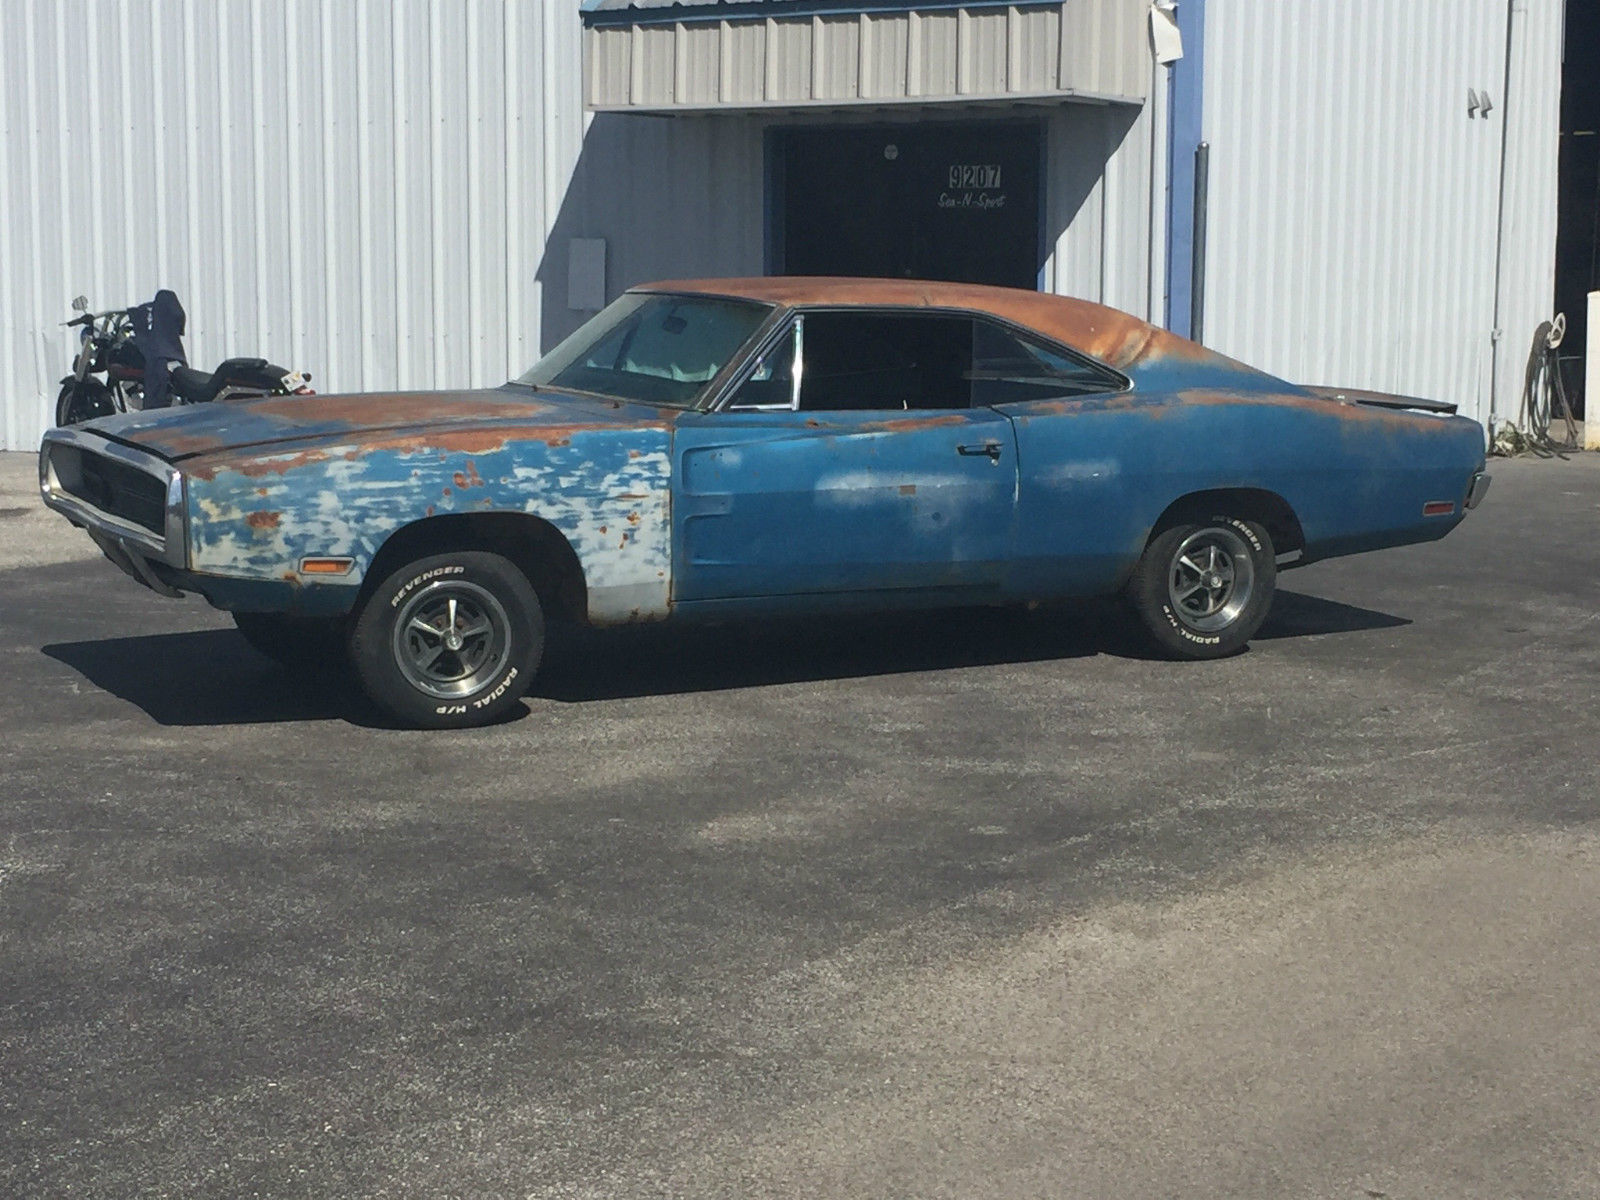 69 dodge charger project car for sale, Custom paper Academic Writing ...